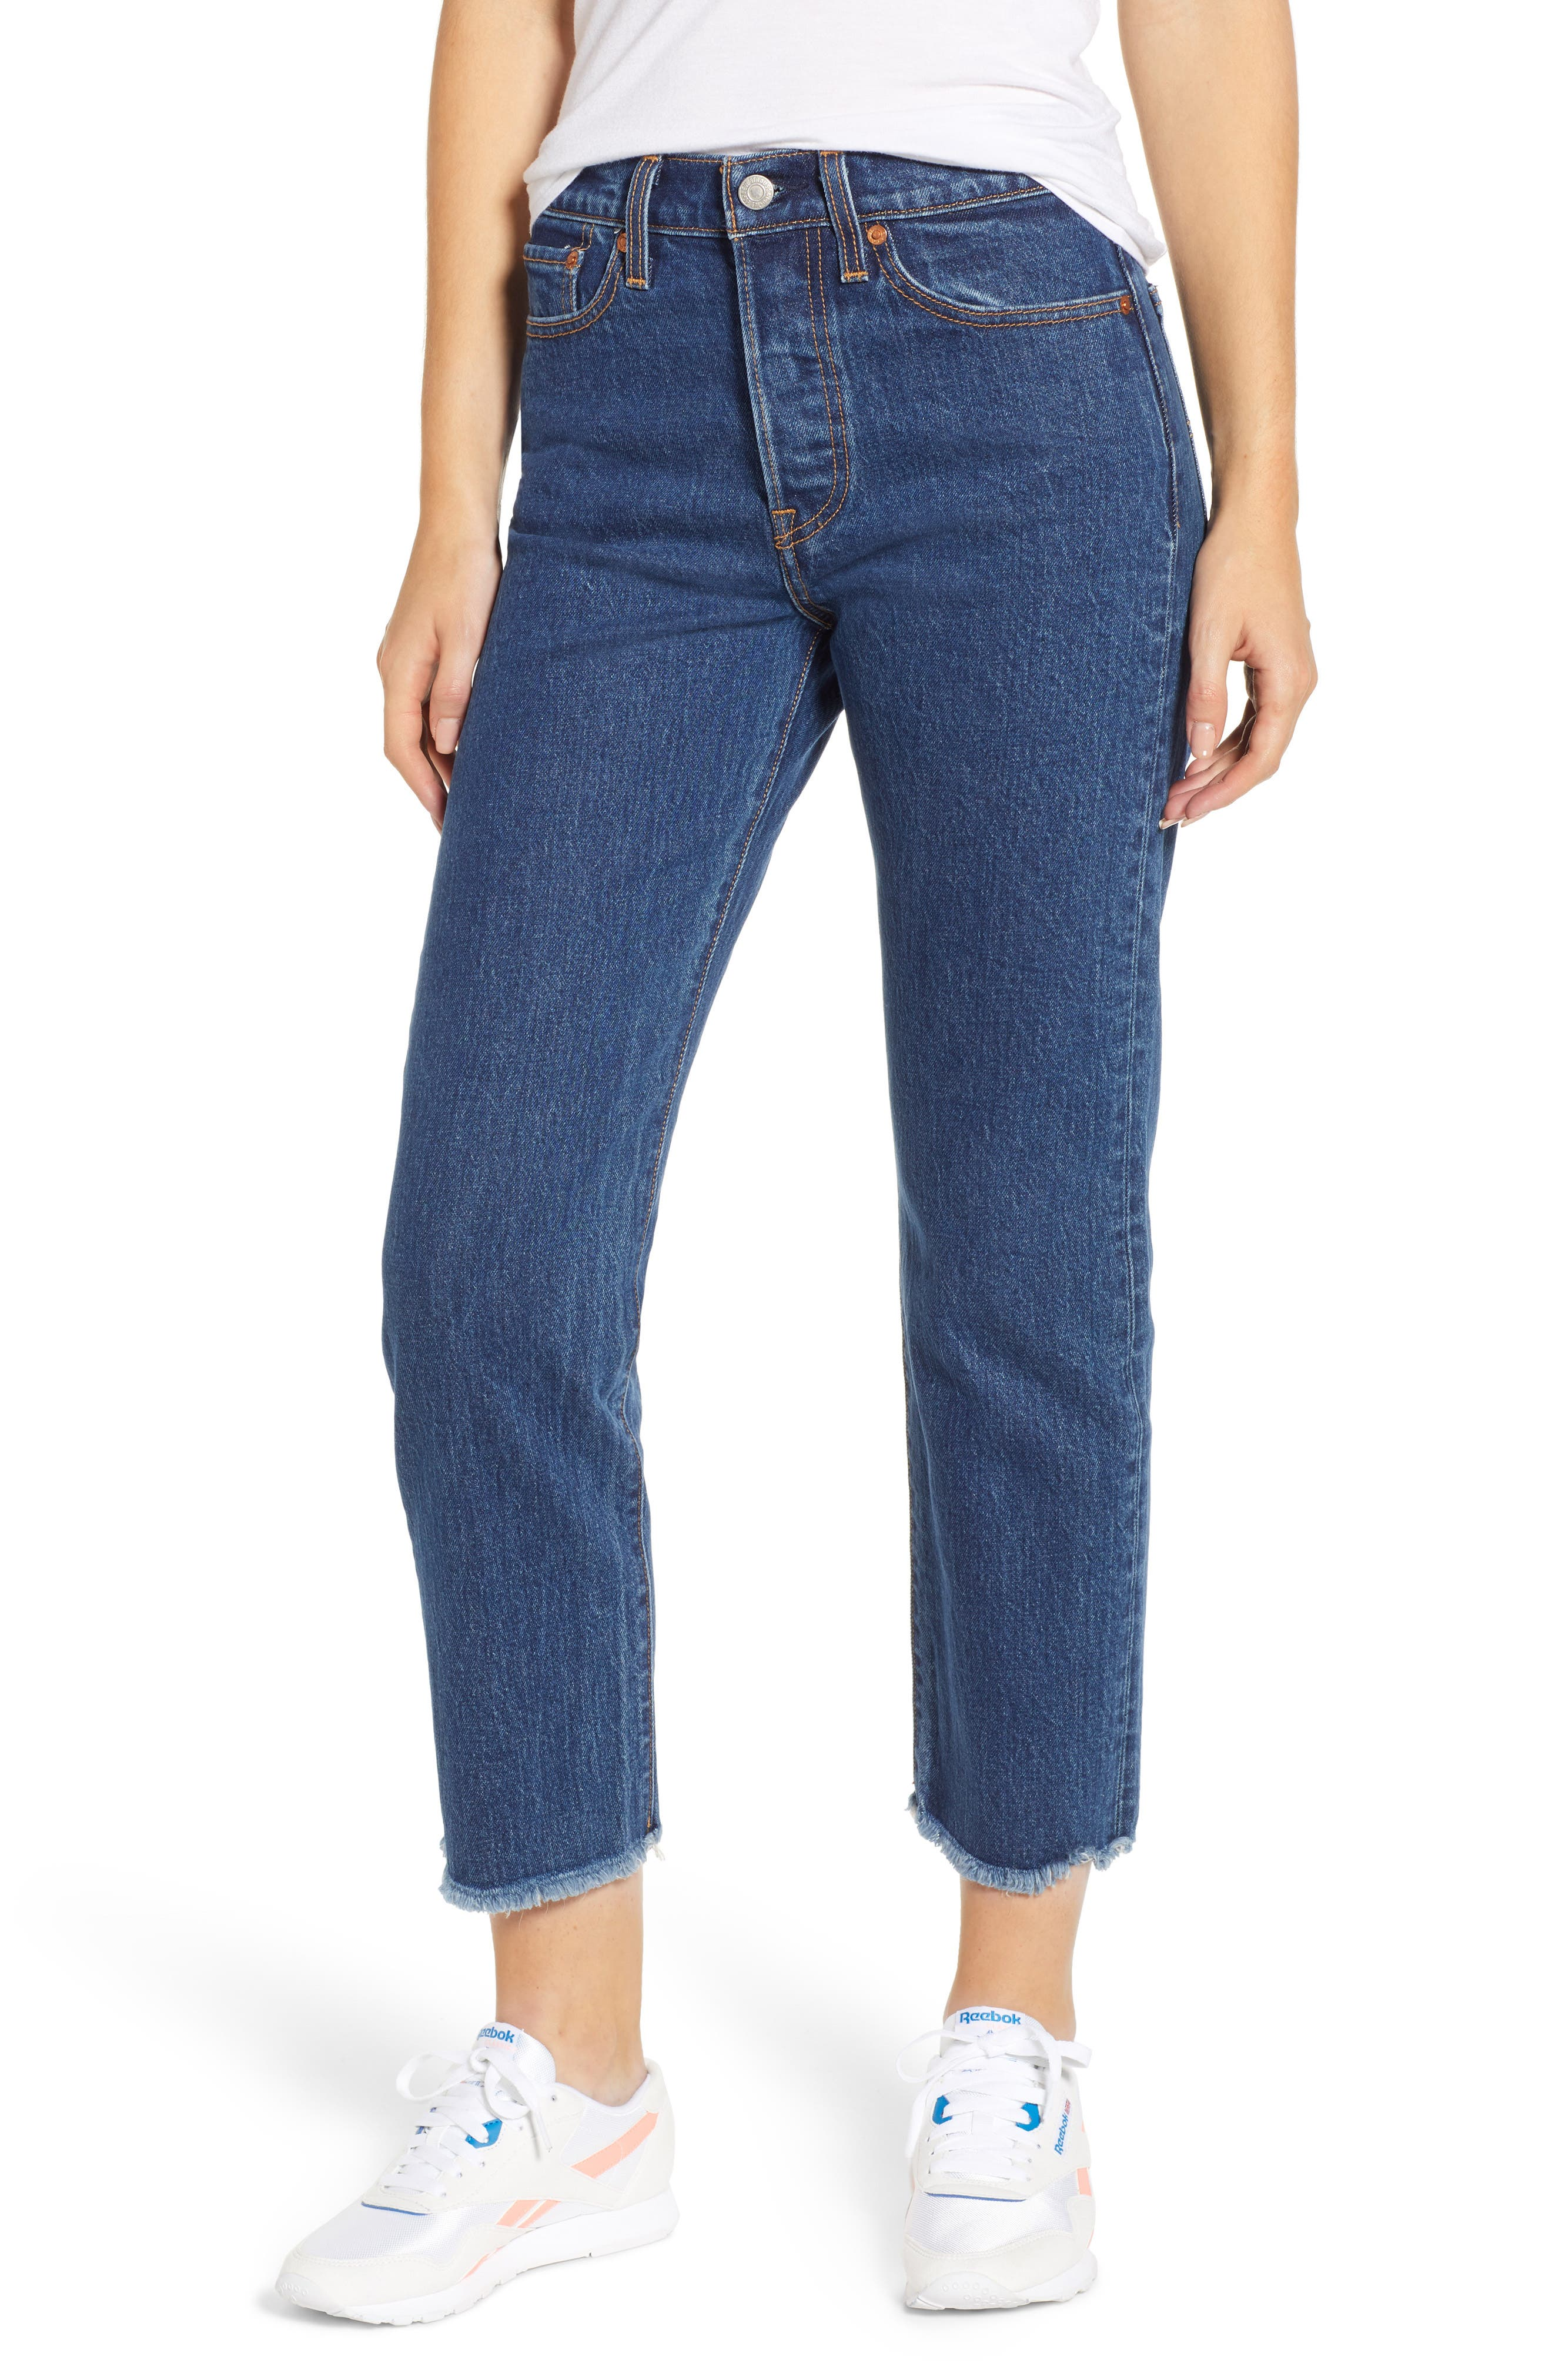 Wedgie High Waist Ankle Straight Leg Jeans in Below The Belt